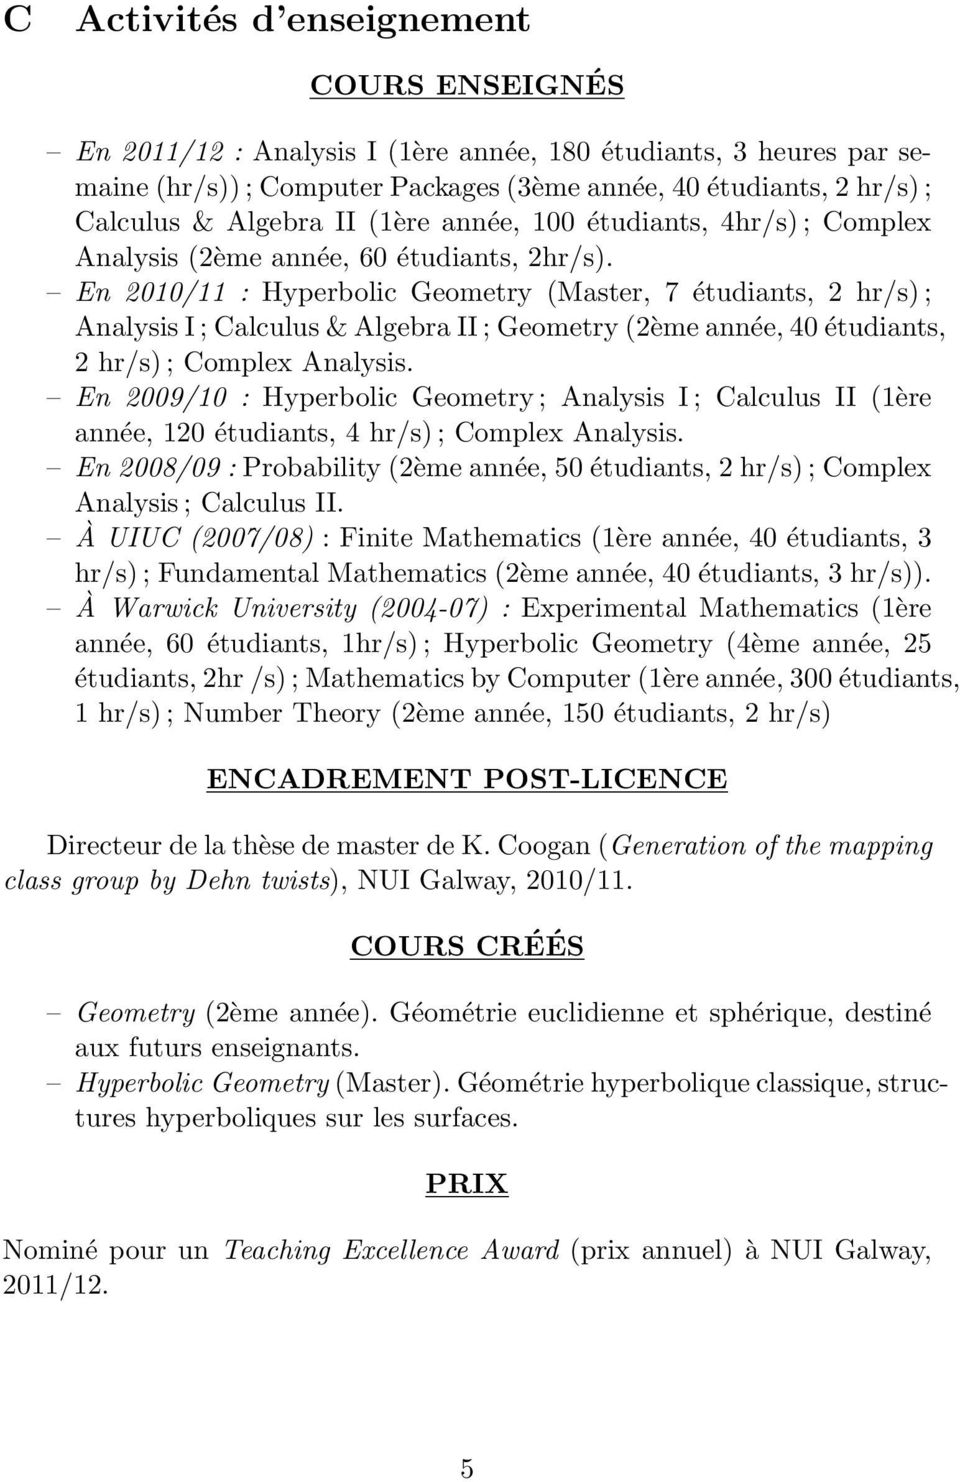 En 2010/11 : Hyperbolic Geometry (Master, 7 étudiants, 2 hr/s) ; Analysis I ; Calculus & Algebra II ; Geometry (2ème année, 40 étudiants, 2 hr/s) ; Complex Analysis.